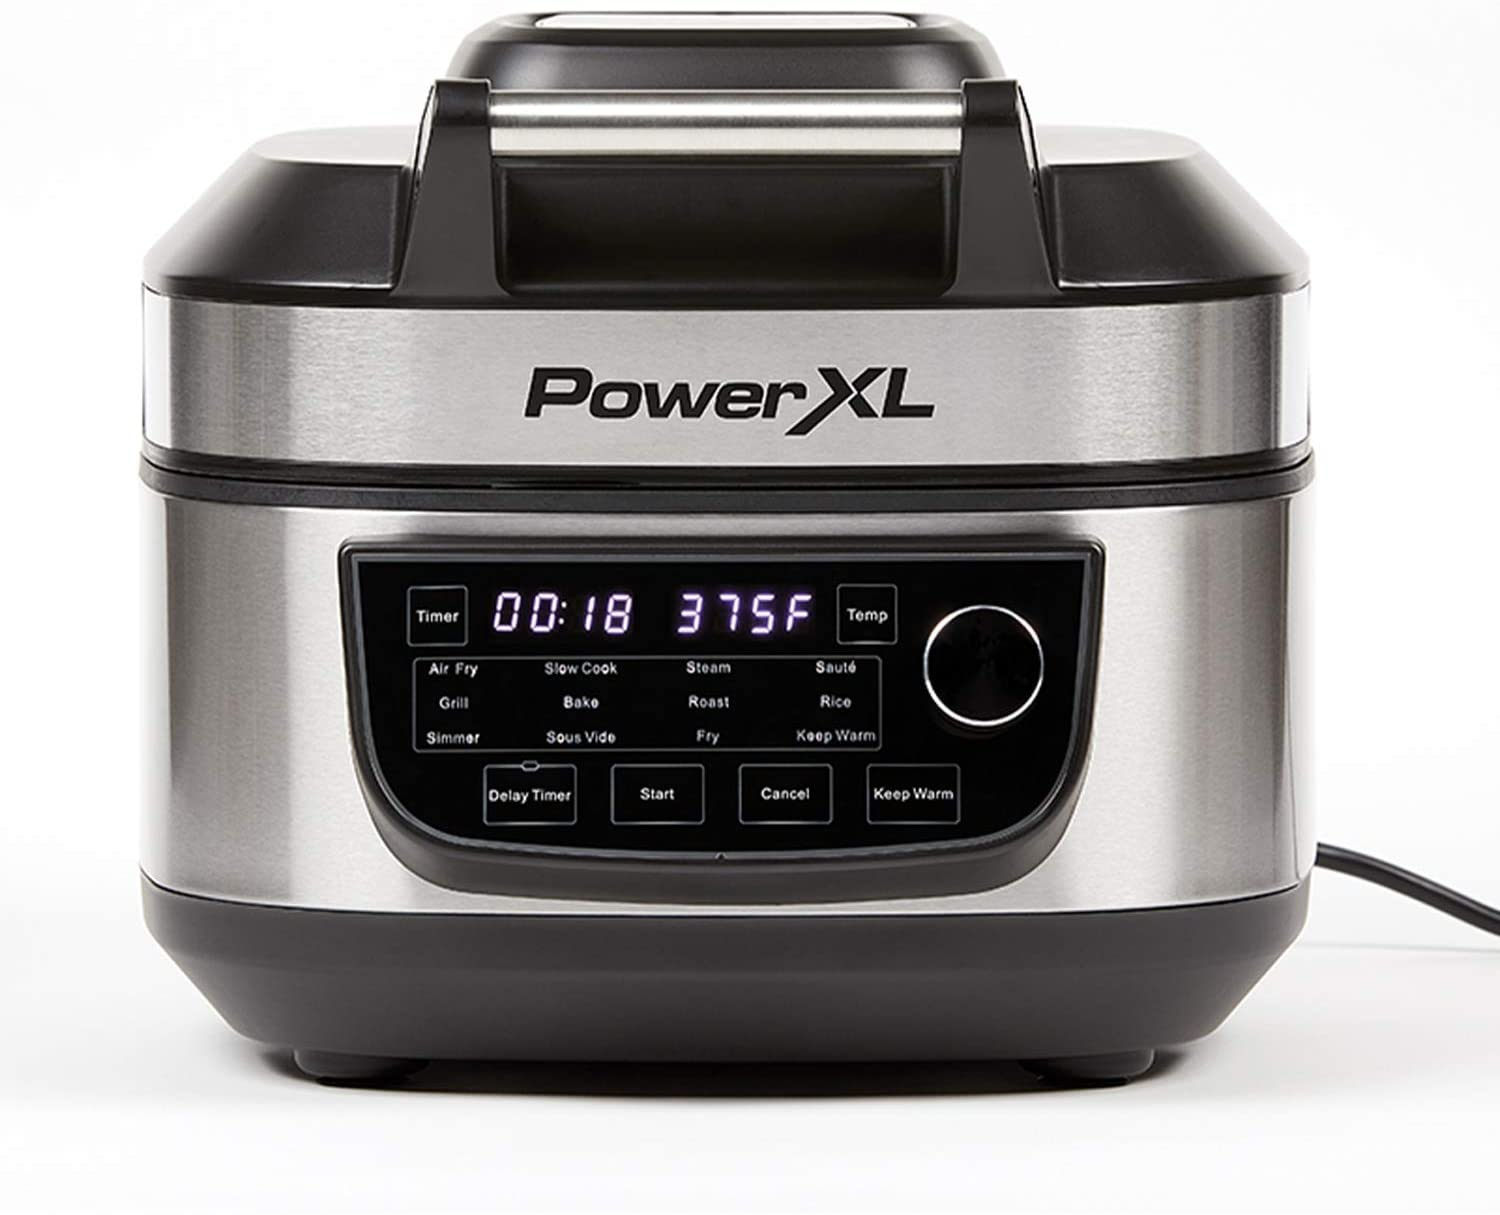 PowerXL Grill Air Fryer Combo 12-in-1 Indoor Grill, Air Fryer, Slow Cooker, Roast, Bake, 1550-Watts, Stainless Steel Finish